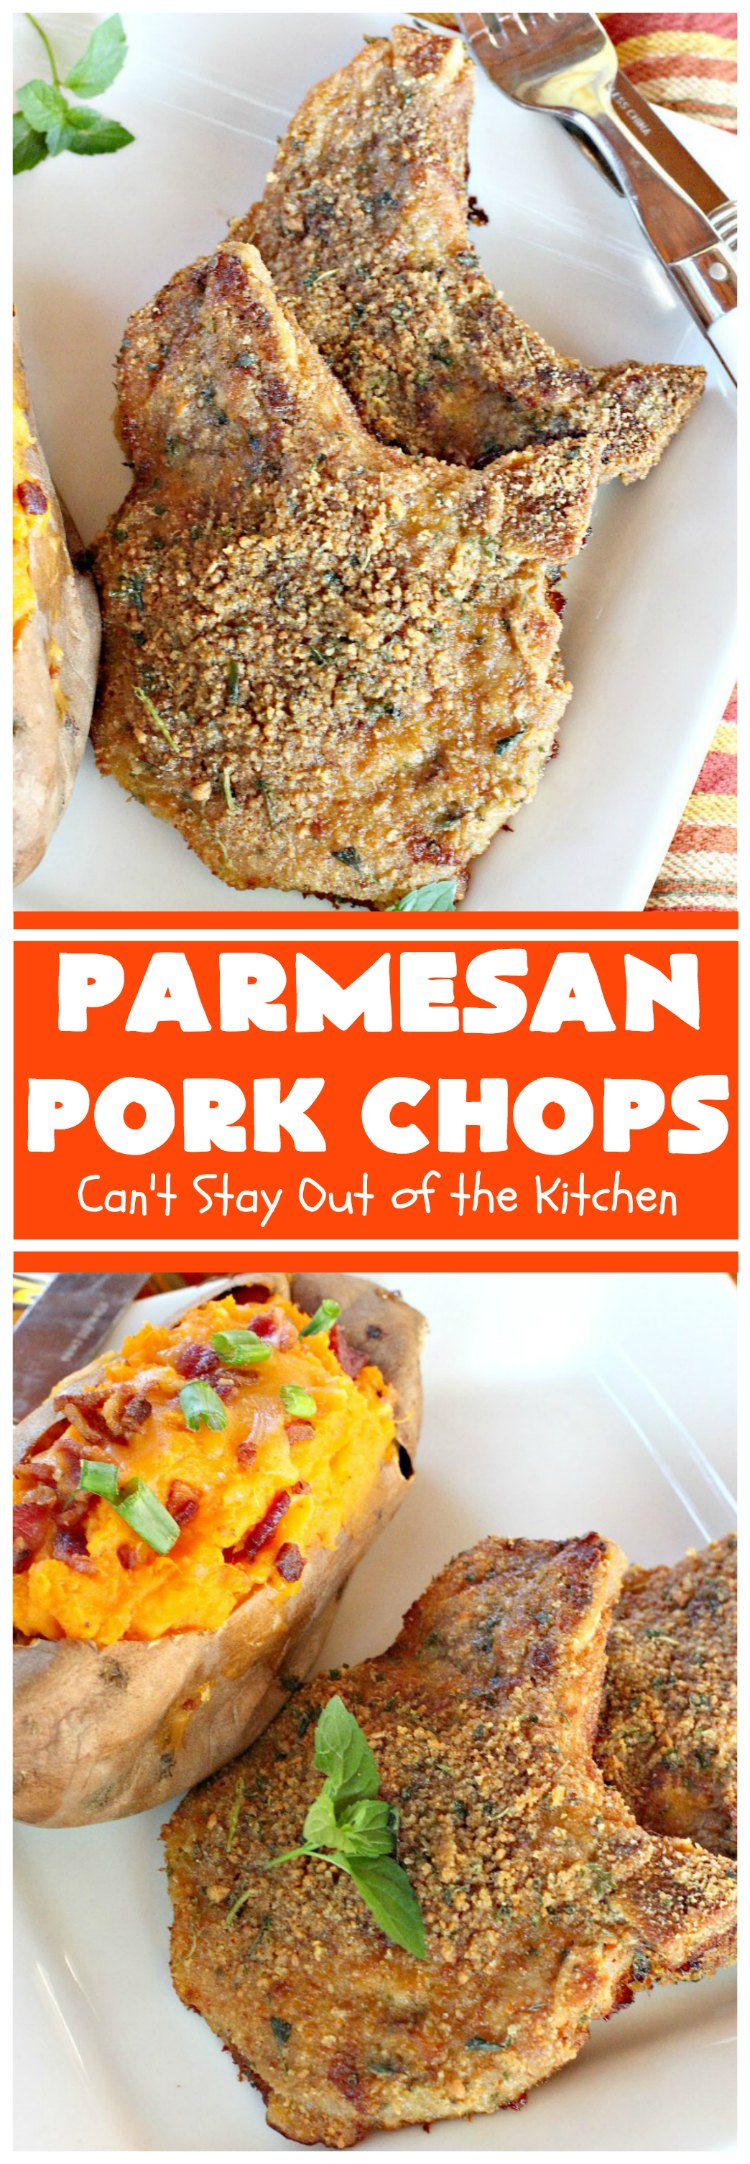 Parmesan Pork Chops | Can't Stay Out of the Kitchen